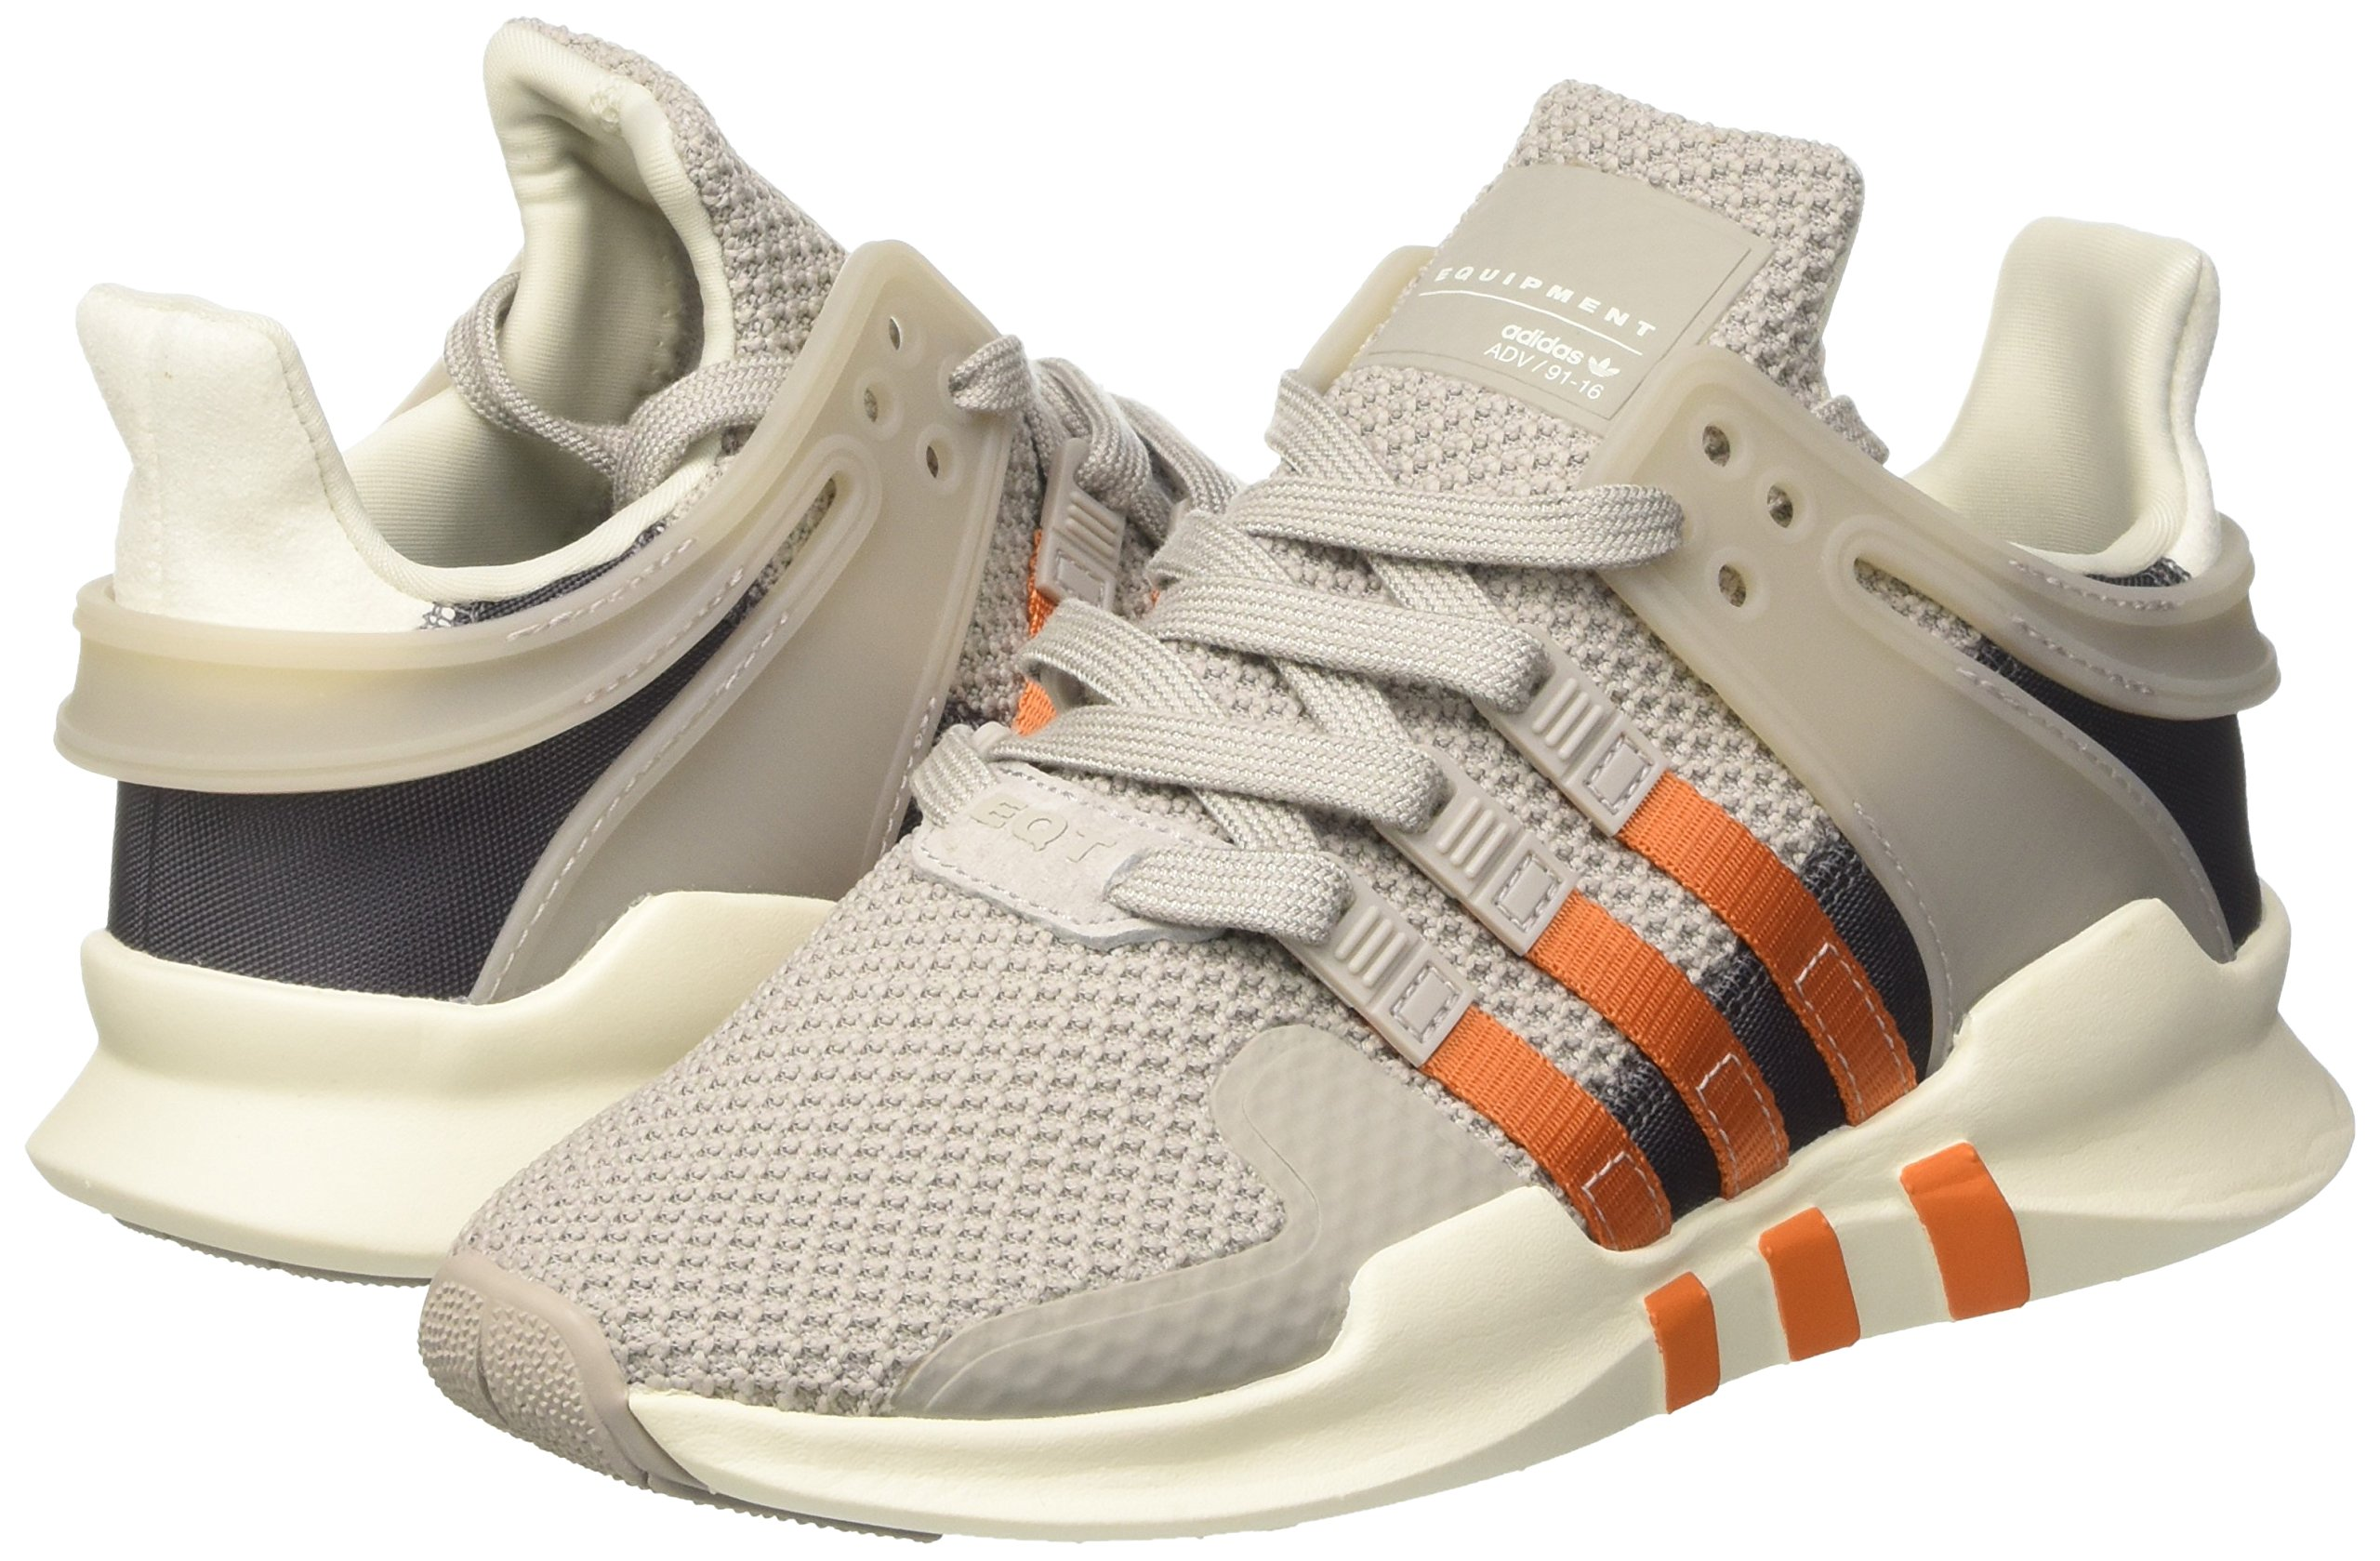 91rK0FrU5nL - adidas Women's Equipment Support a Low-Top Sneakers, Grey